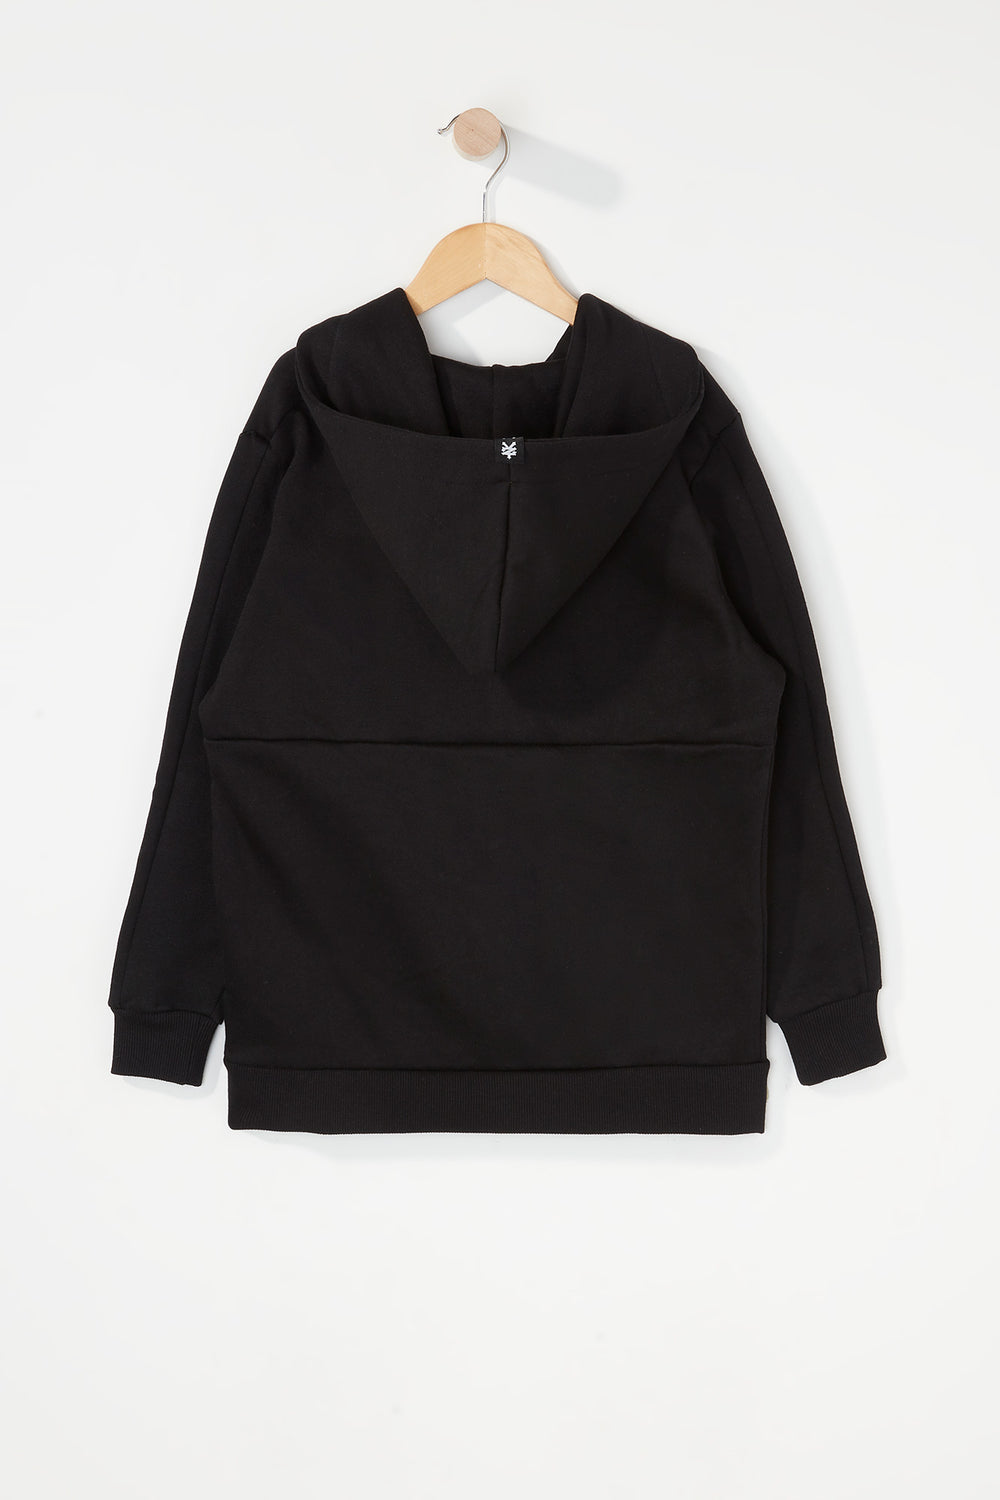 Zoo York Boys Embroidered Logo Hoodie Black